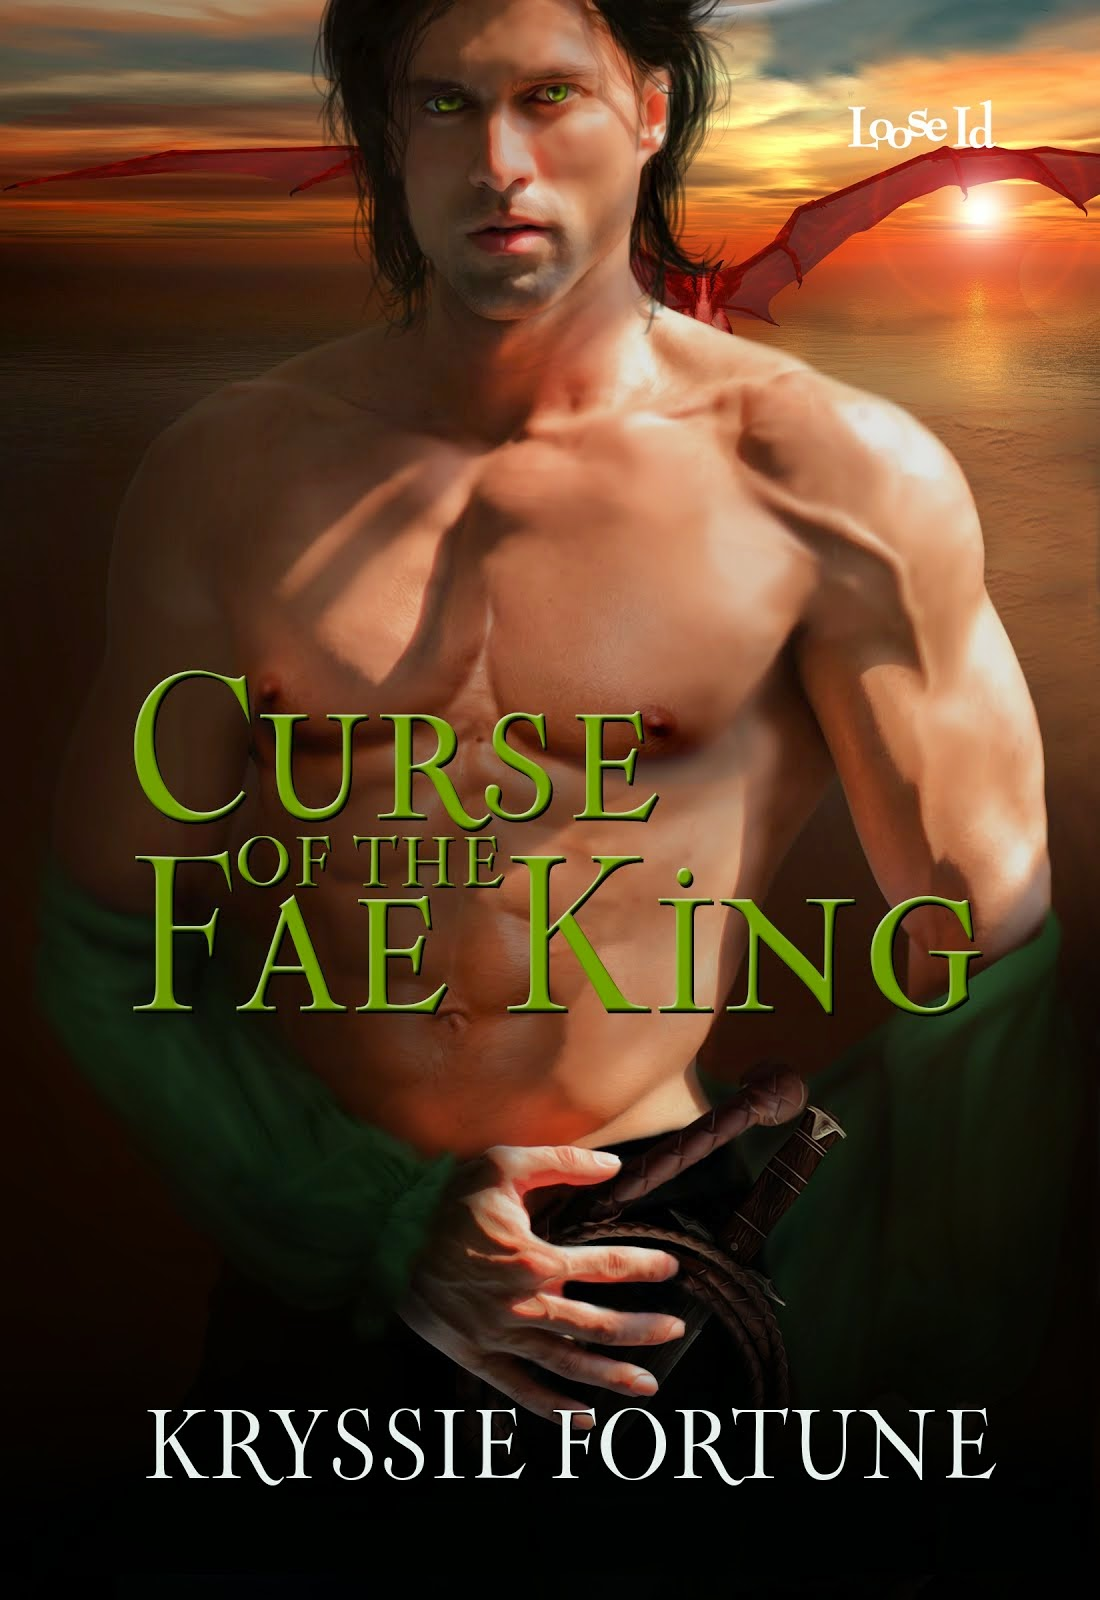 Curse of the Fae King